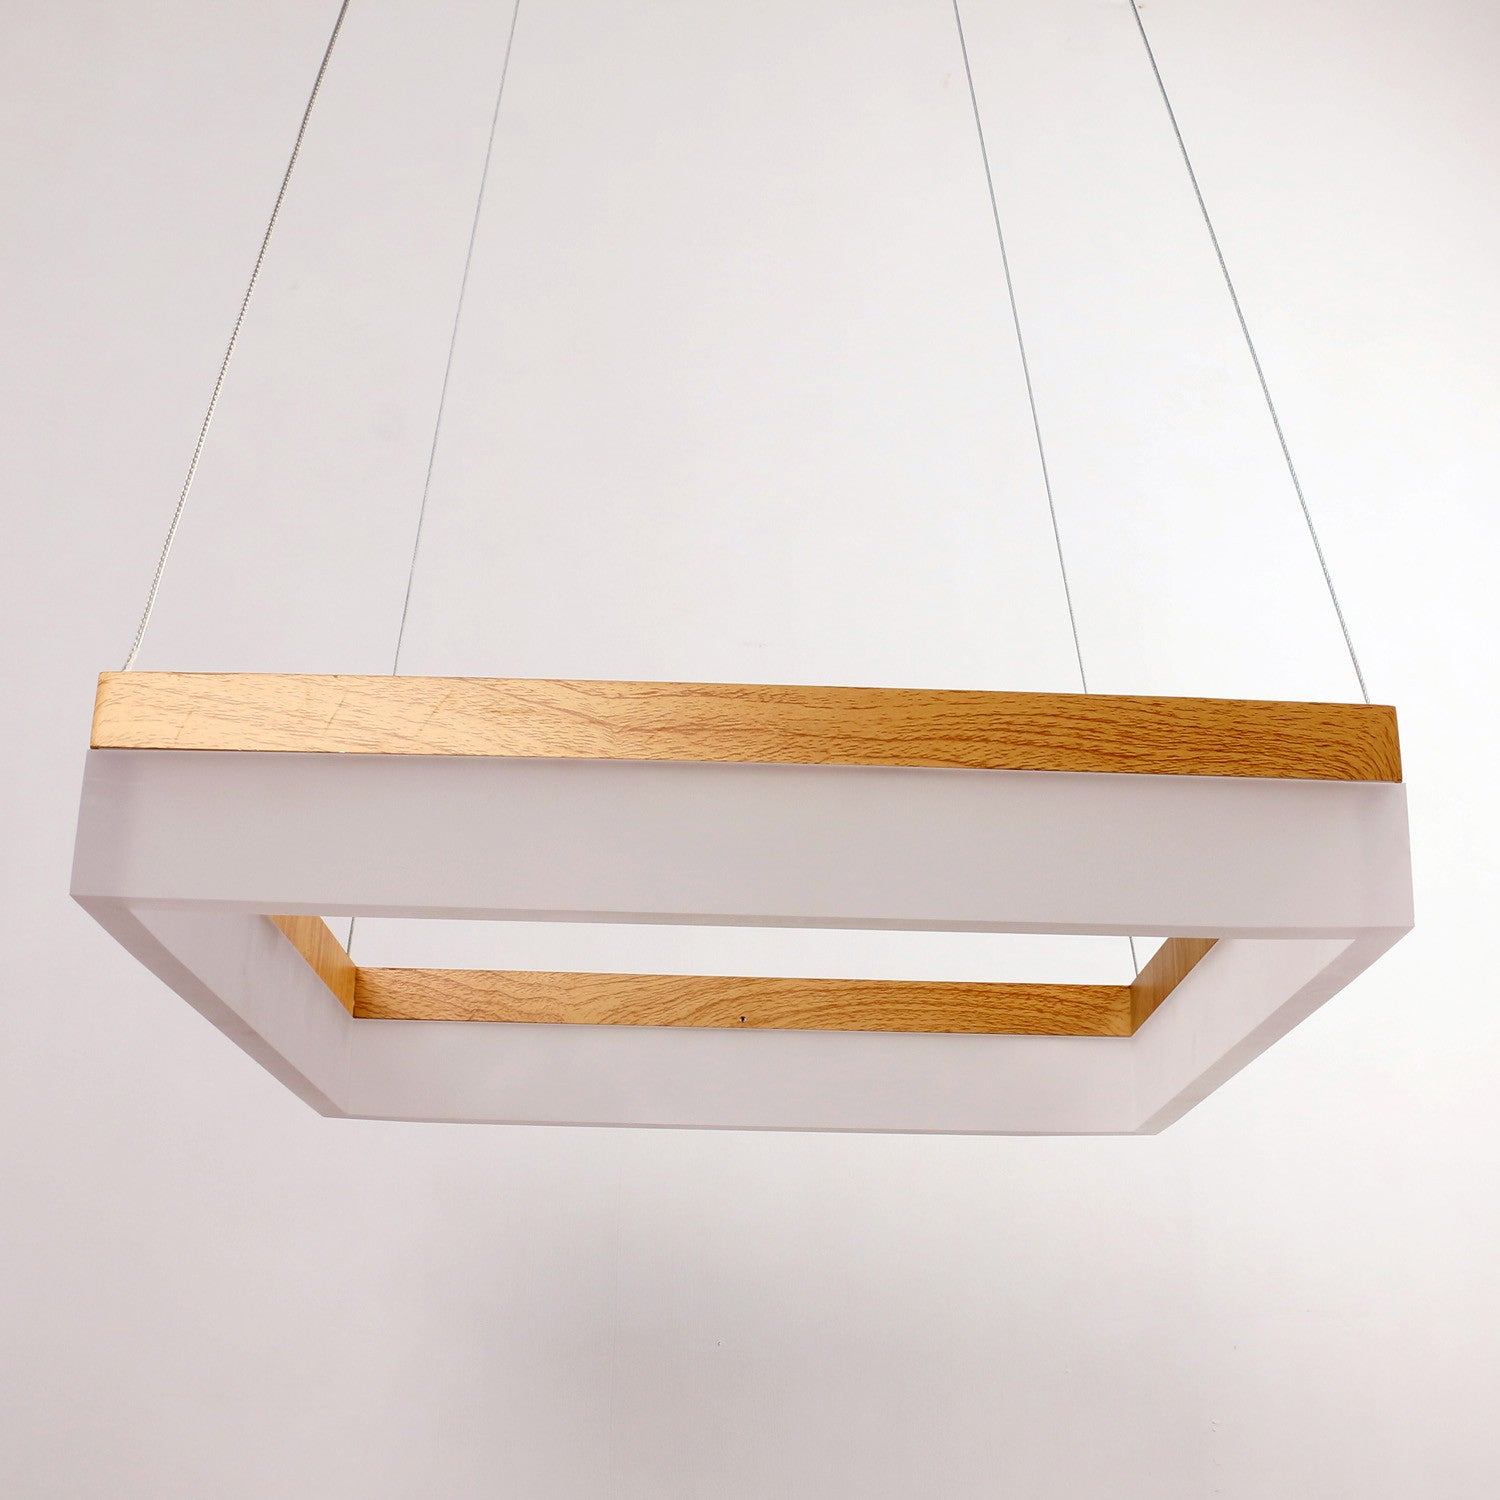 Modern square white led pendant lighting fixture 38w painted finish modern square white led pendant lighting fixture 38w painted finish mozeypictures Image collections